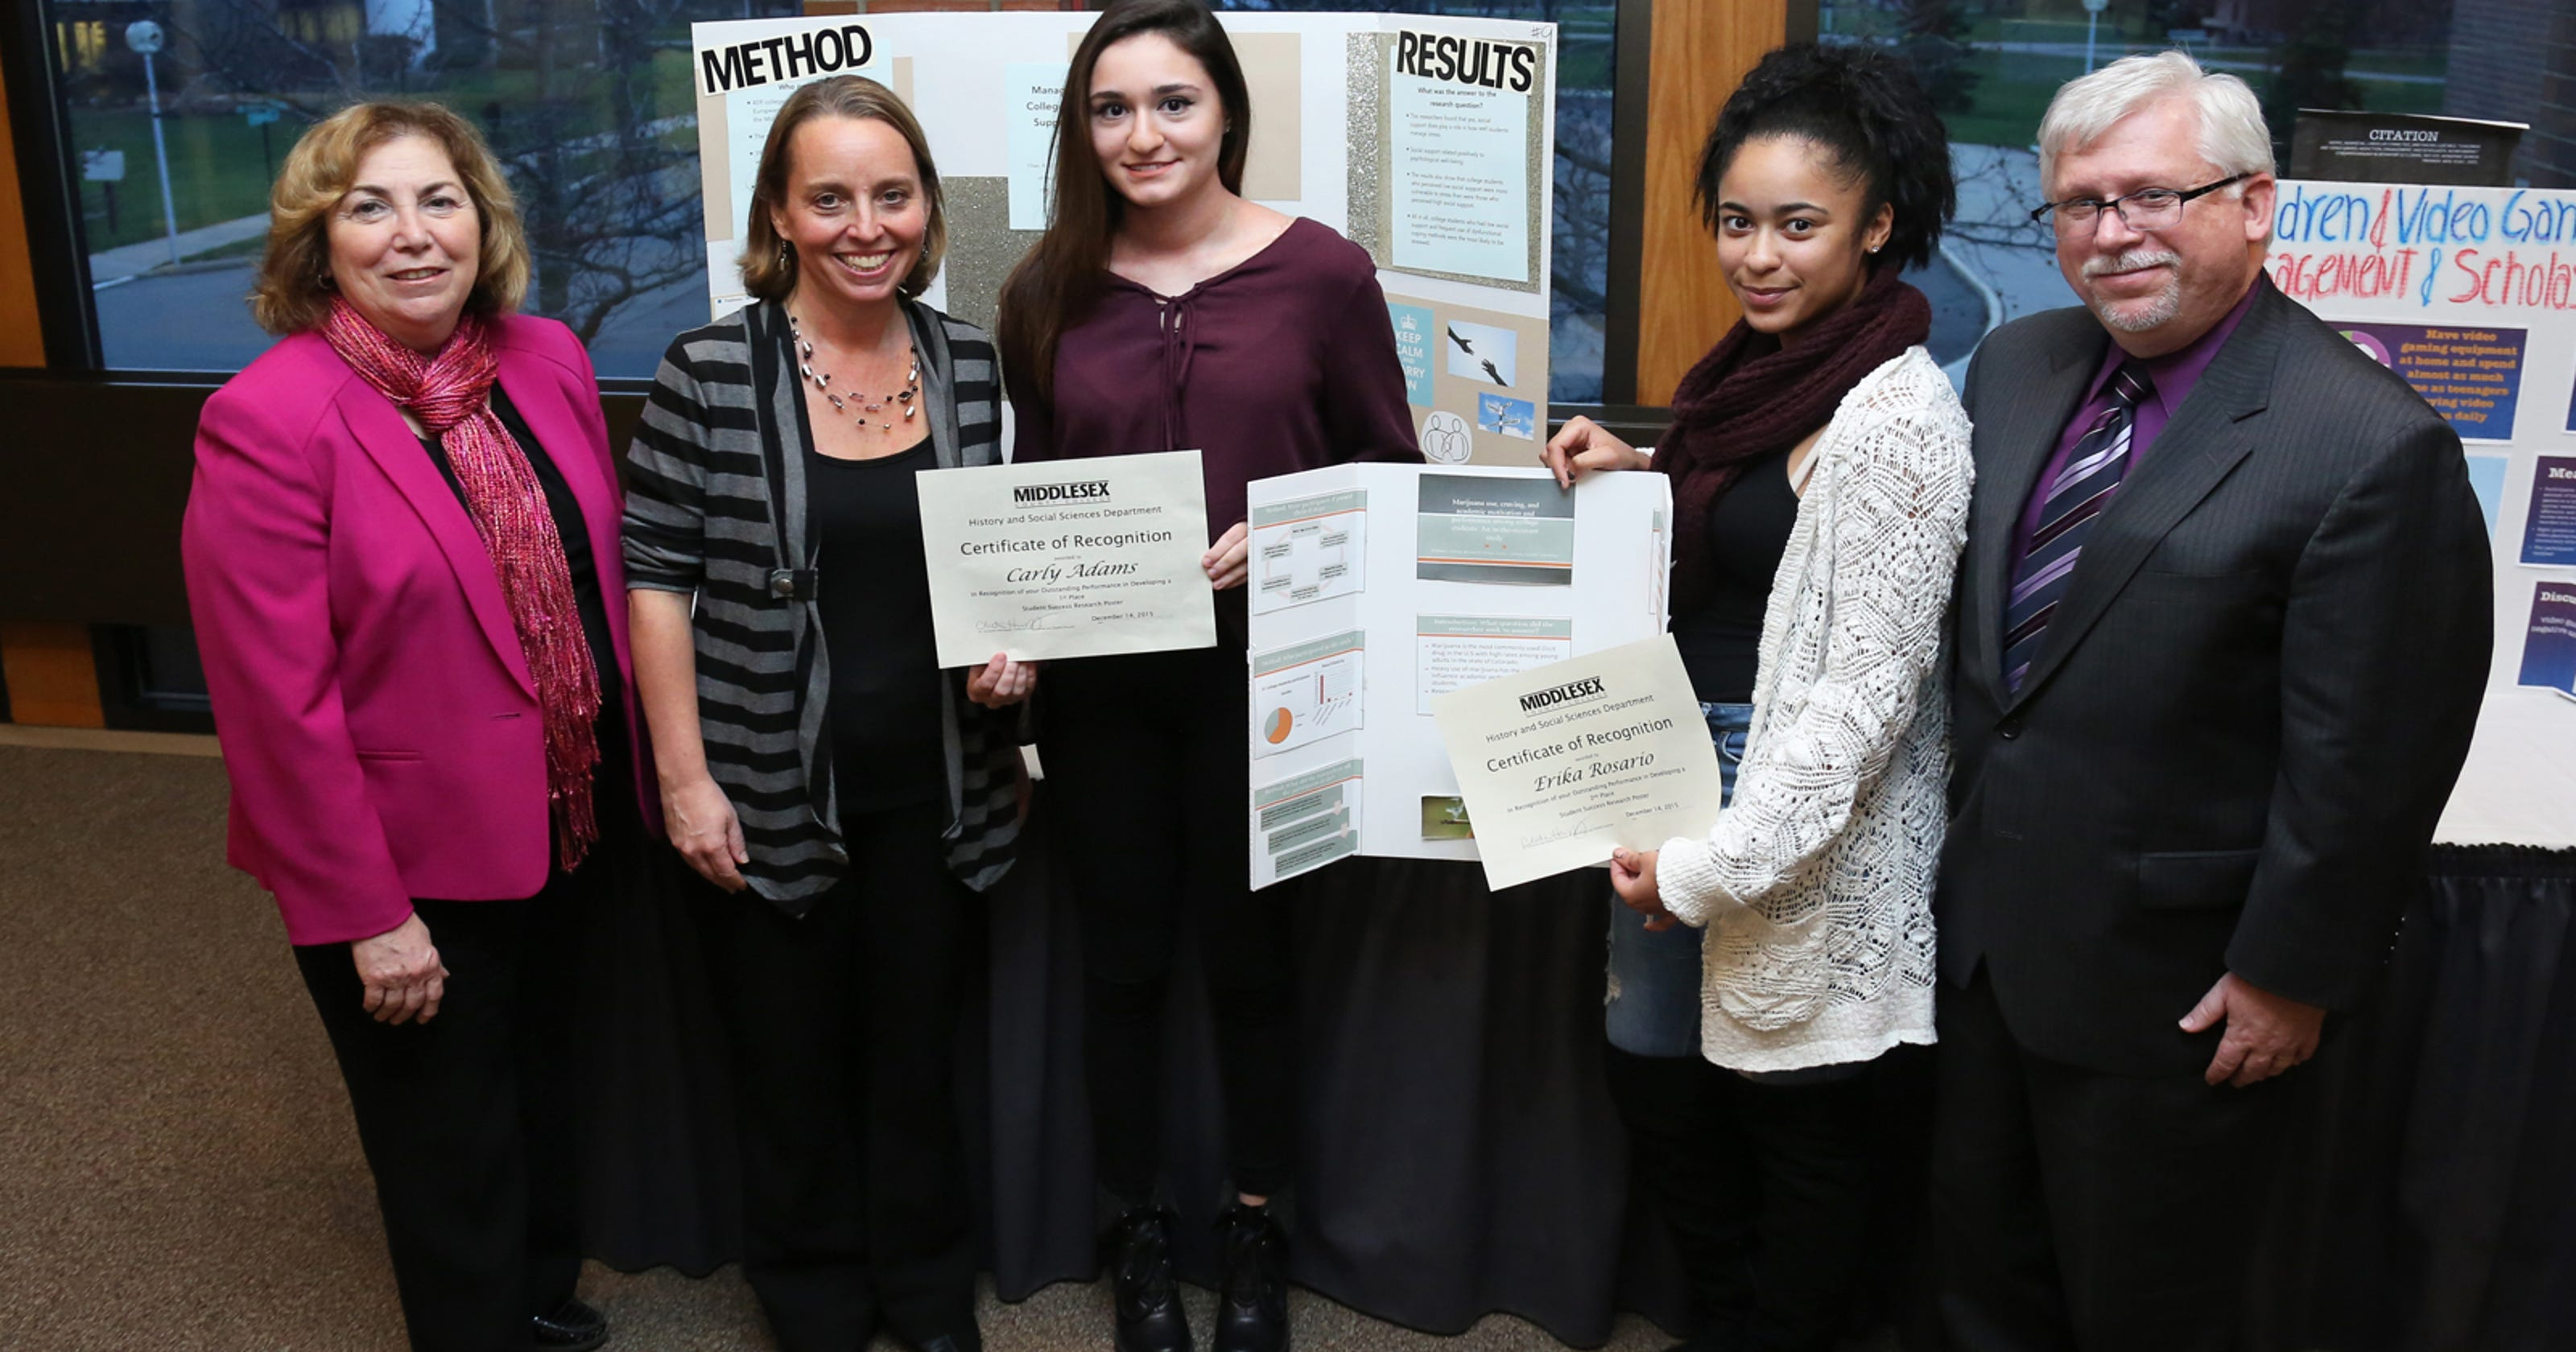 Pathways At Mcc Is An Alternate Route To Teaching Career